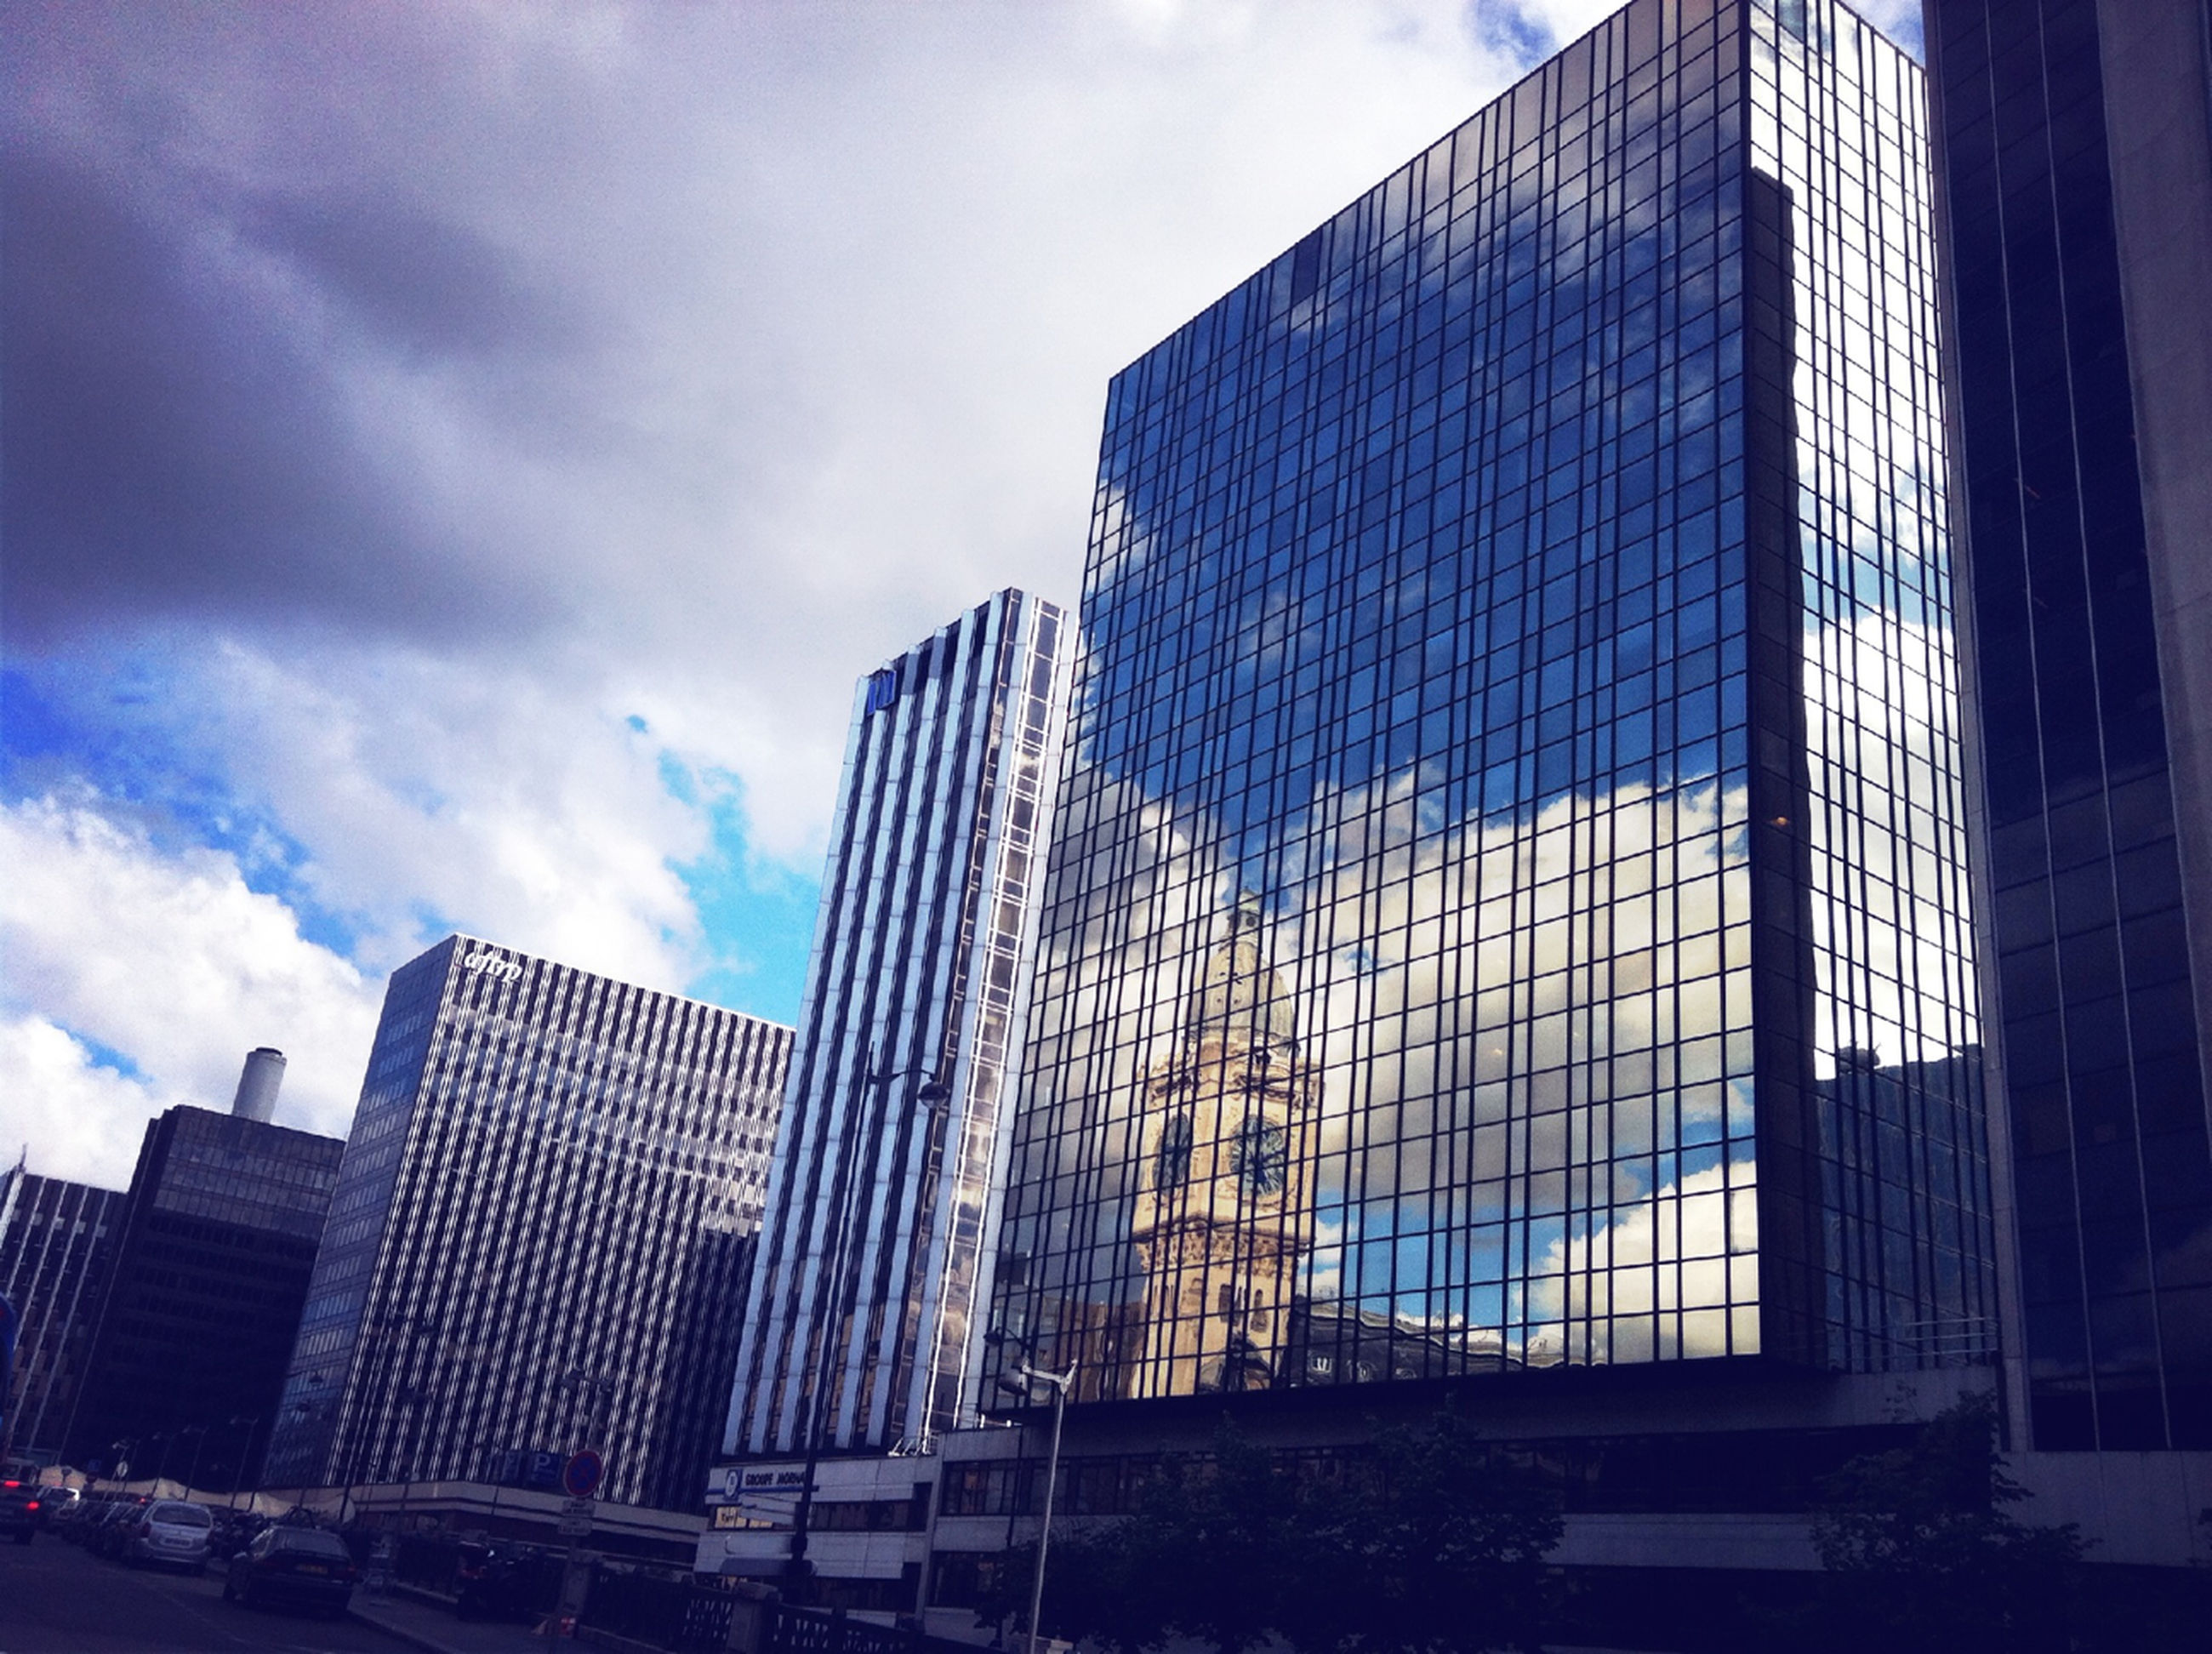 architecture, built structure, building exterior, city, modern, skyscraper, sky, office building, low angle view, tall - high, tower, cloud - sky, glass - material, capital cities, building, cloud, travel destinations, famous place, city life, day